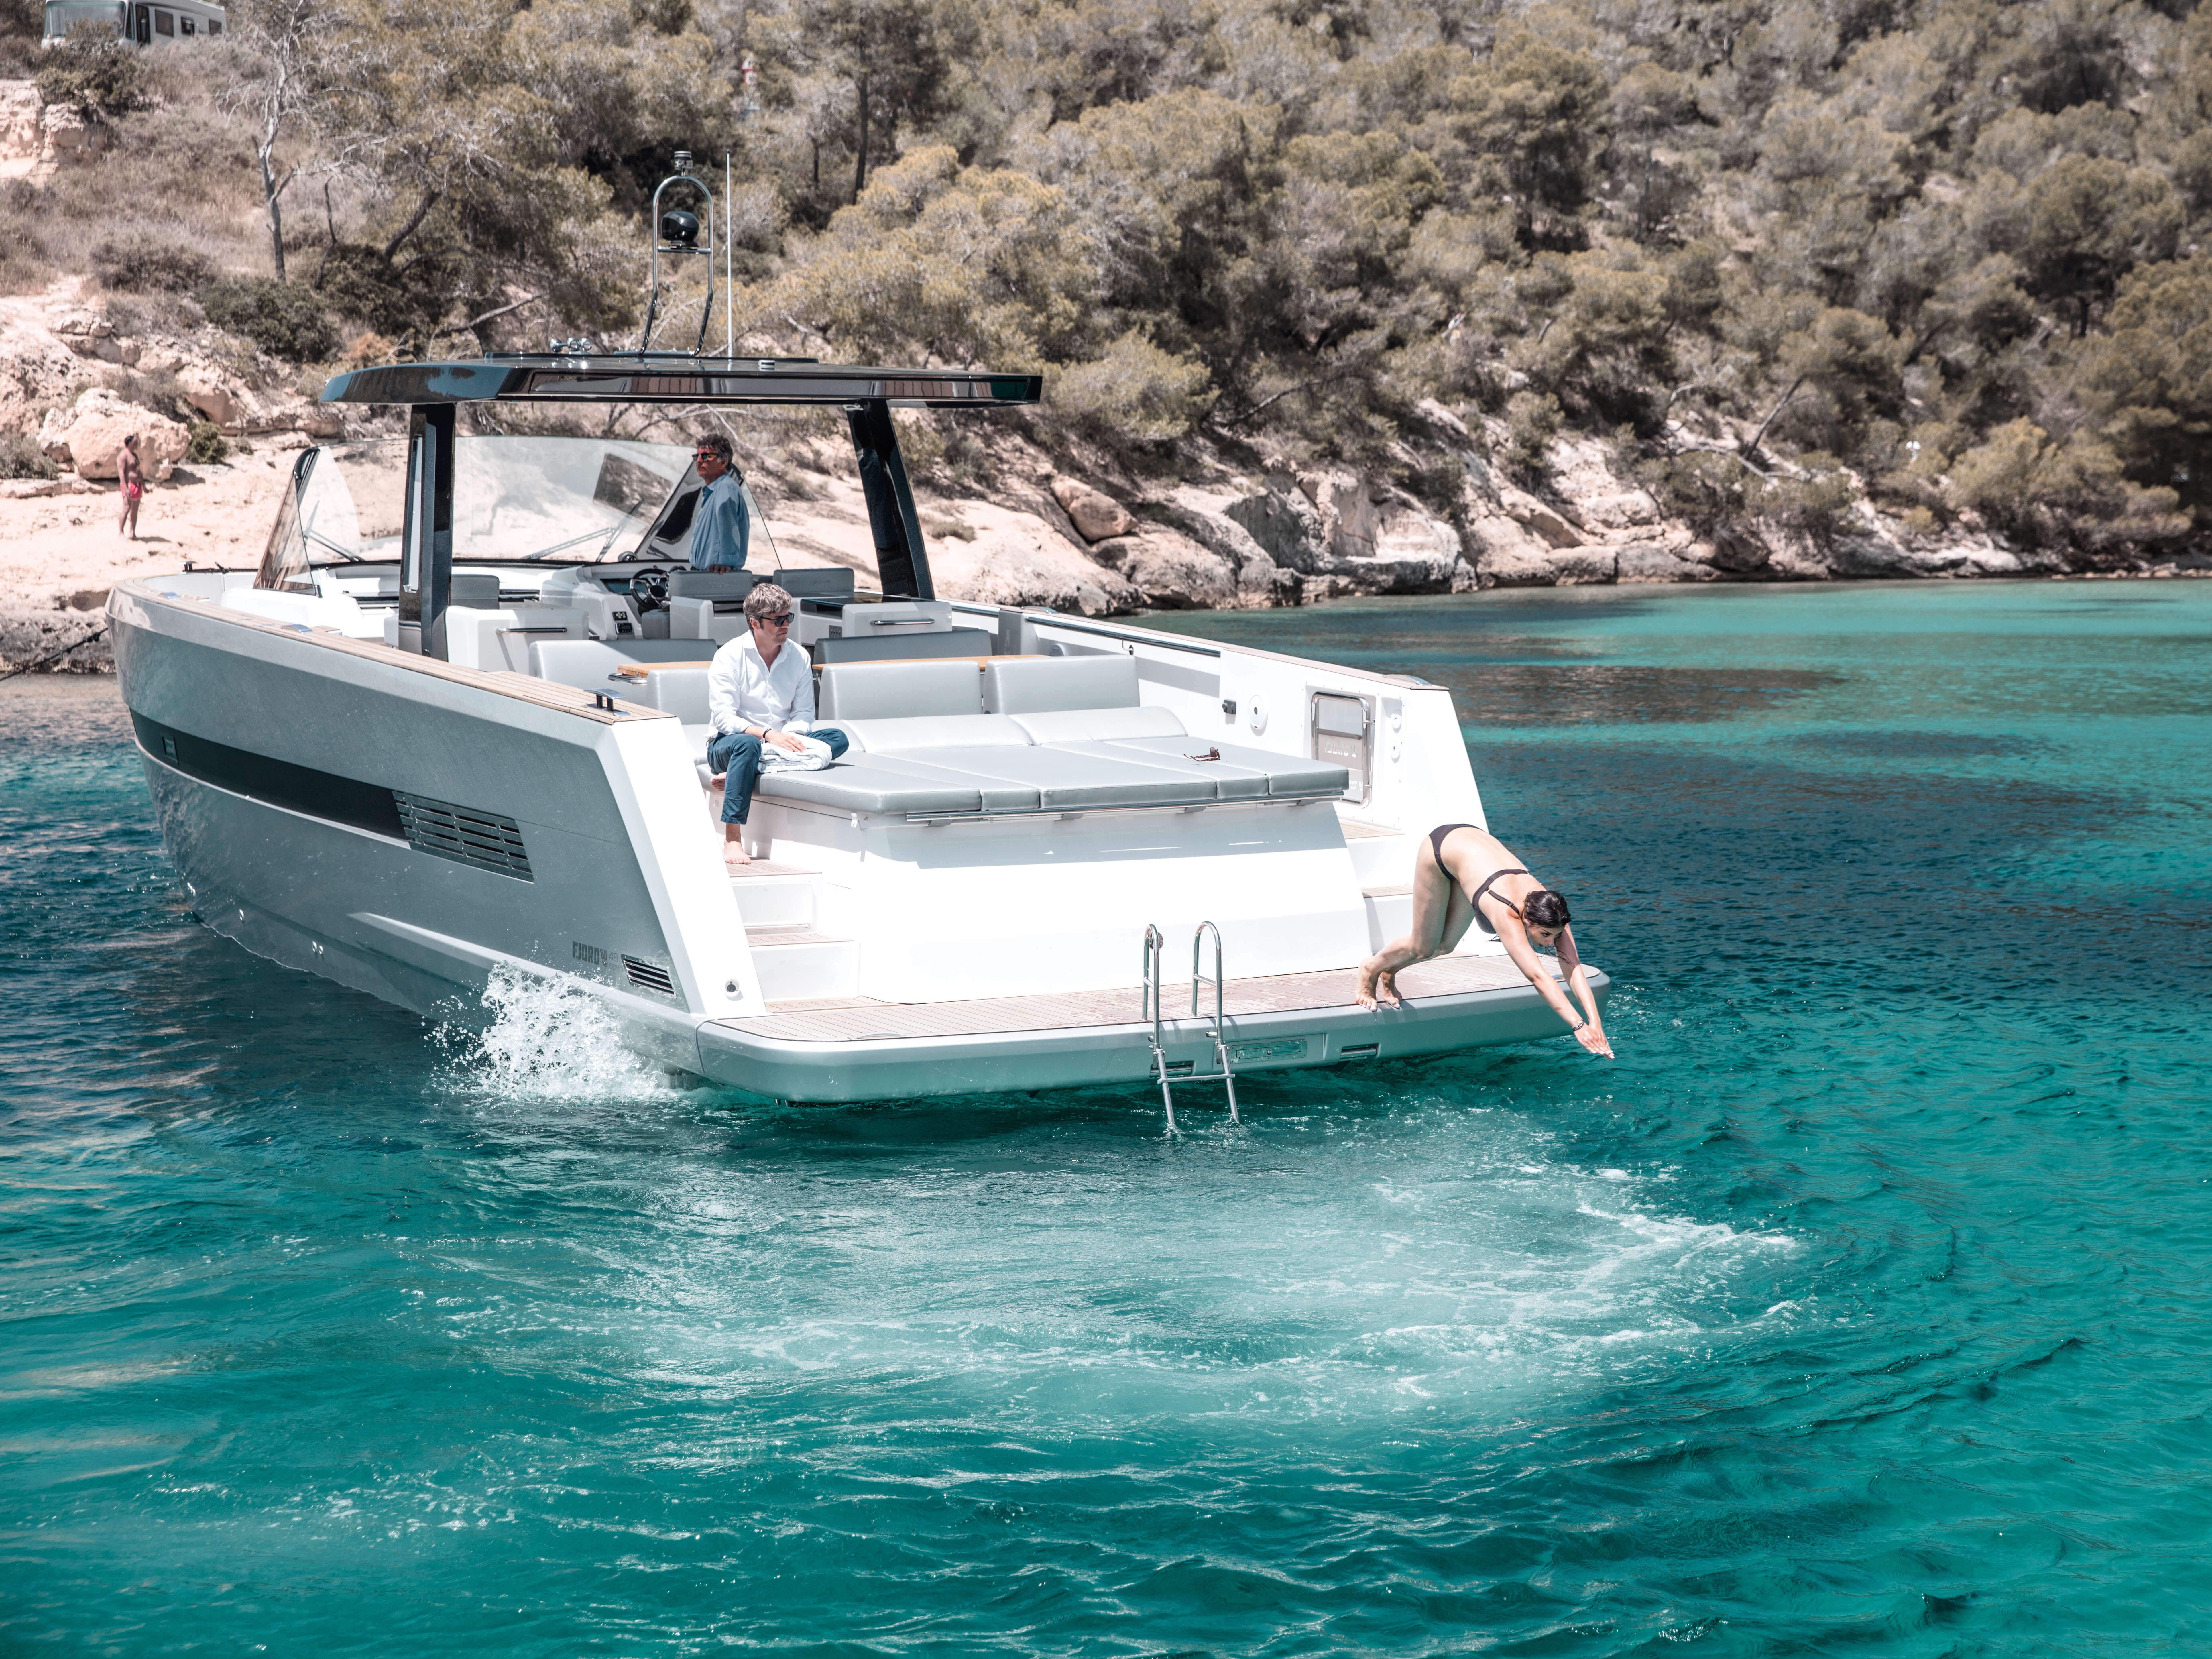 Fjord 48 open Exterior ride | bathing platform with teak and hydraulic lift, stand alone bathing ladder with handles, aft sunbed, painted hull, T-top with skylights | Fjord